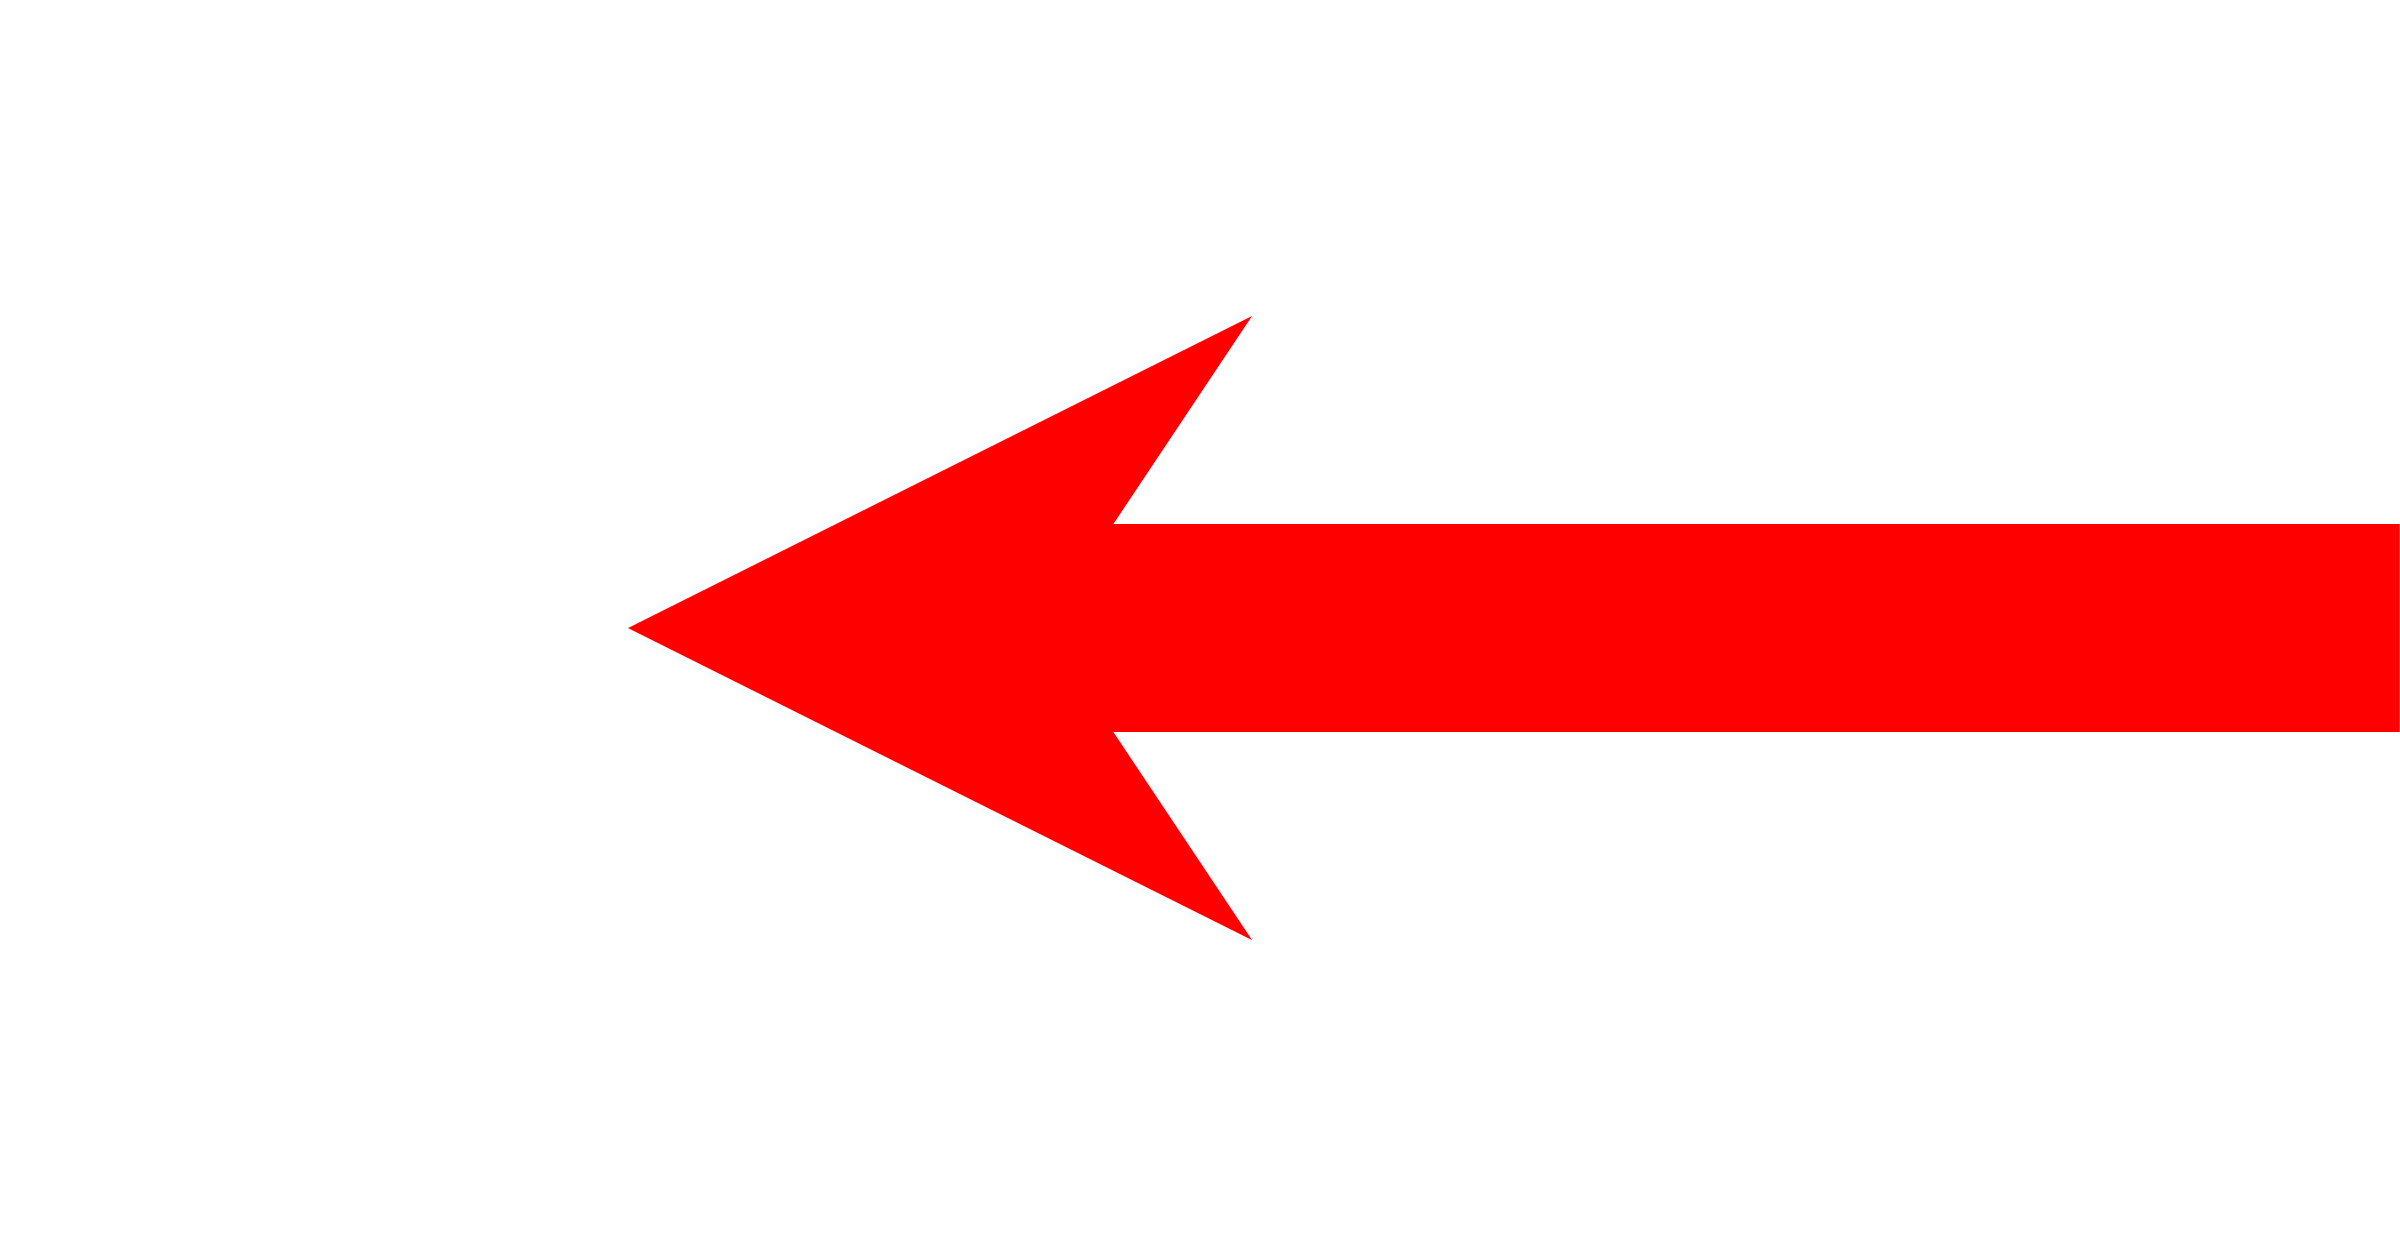 PNG Red Arrow - 75552